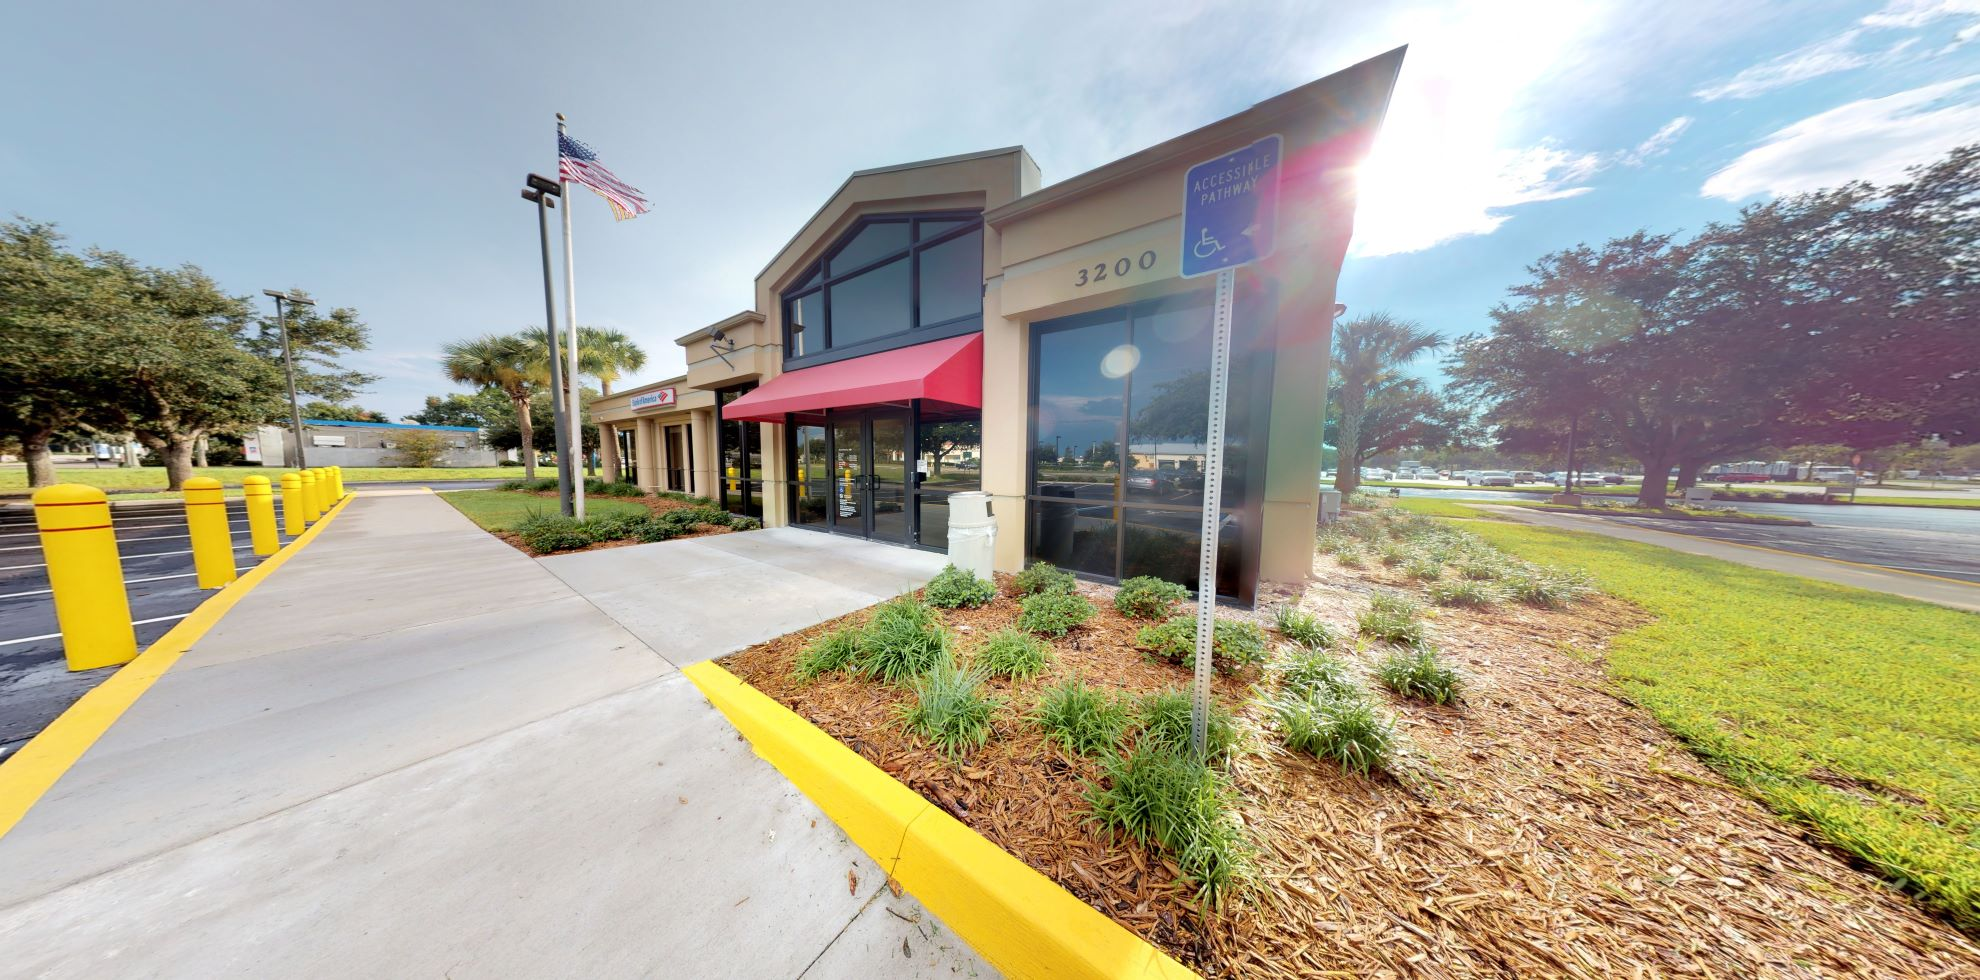 Bank of America financial center with drive-thru ATM and teller   3200 County Road 44B, Mount Dora, FL 32757